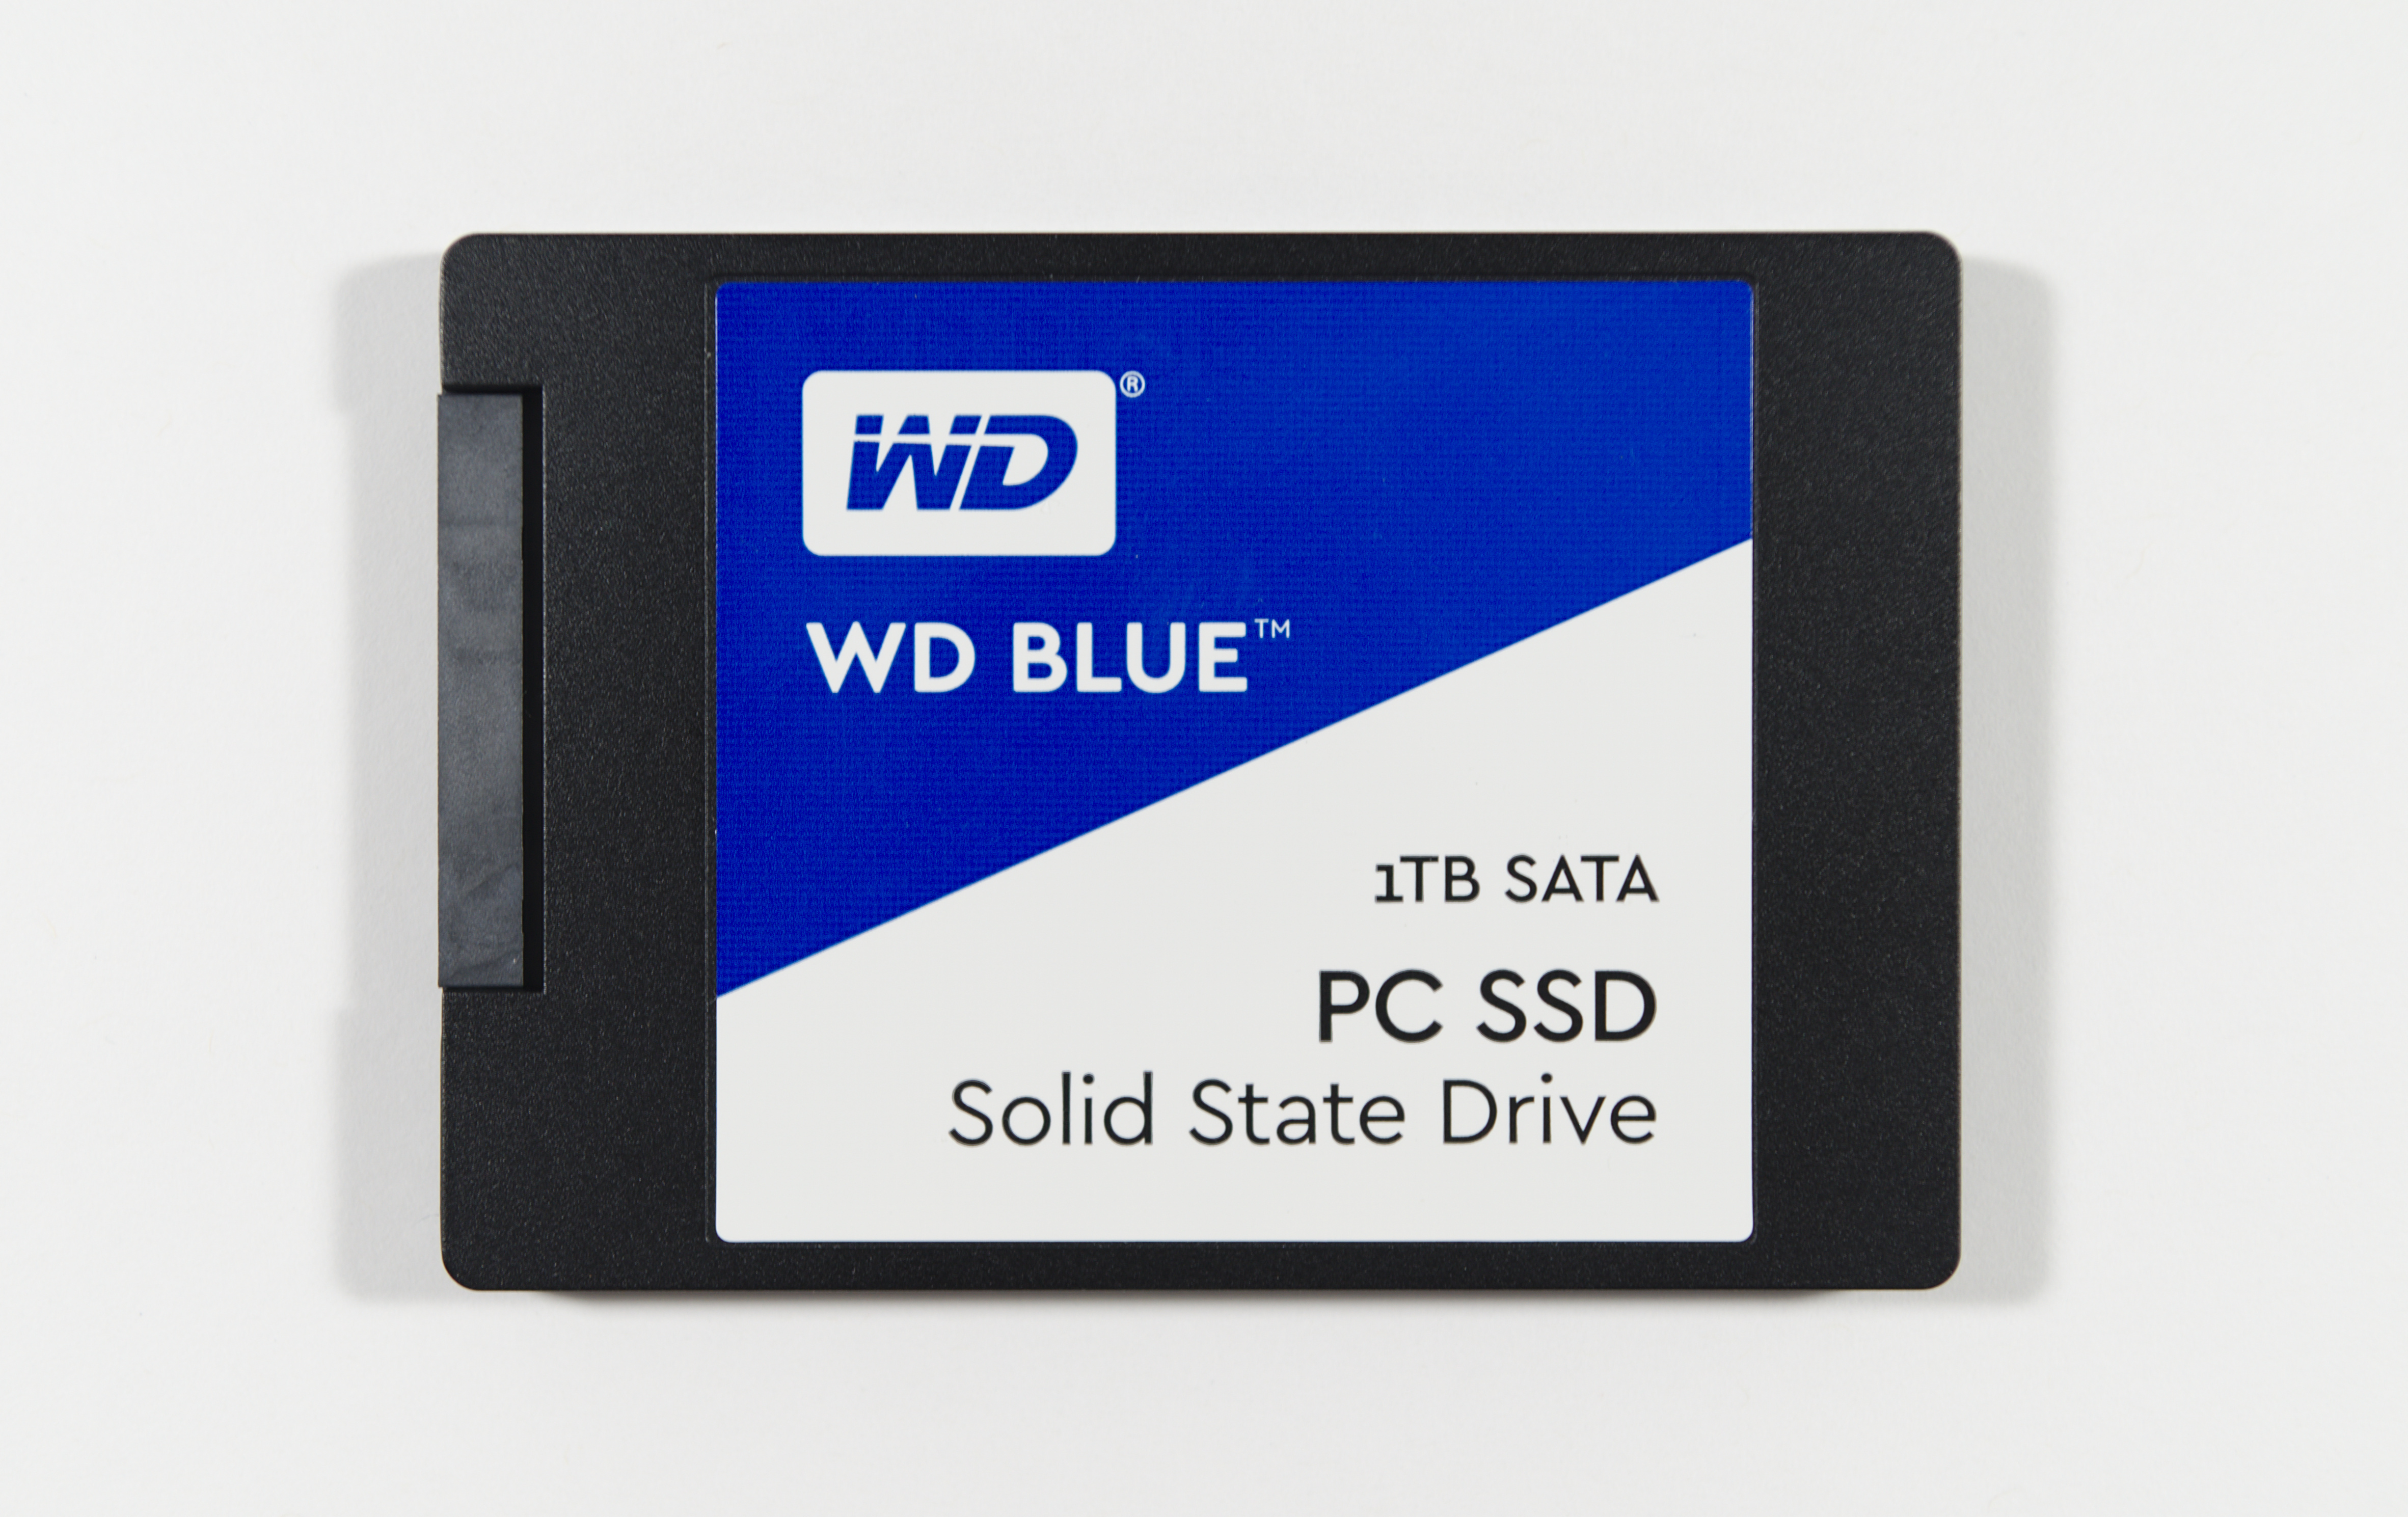 WD Announces WD Blue, WD Green SSDs - Returns to Consumer SSD Market